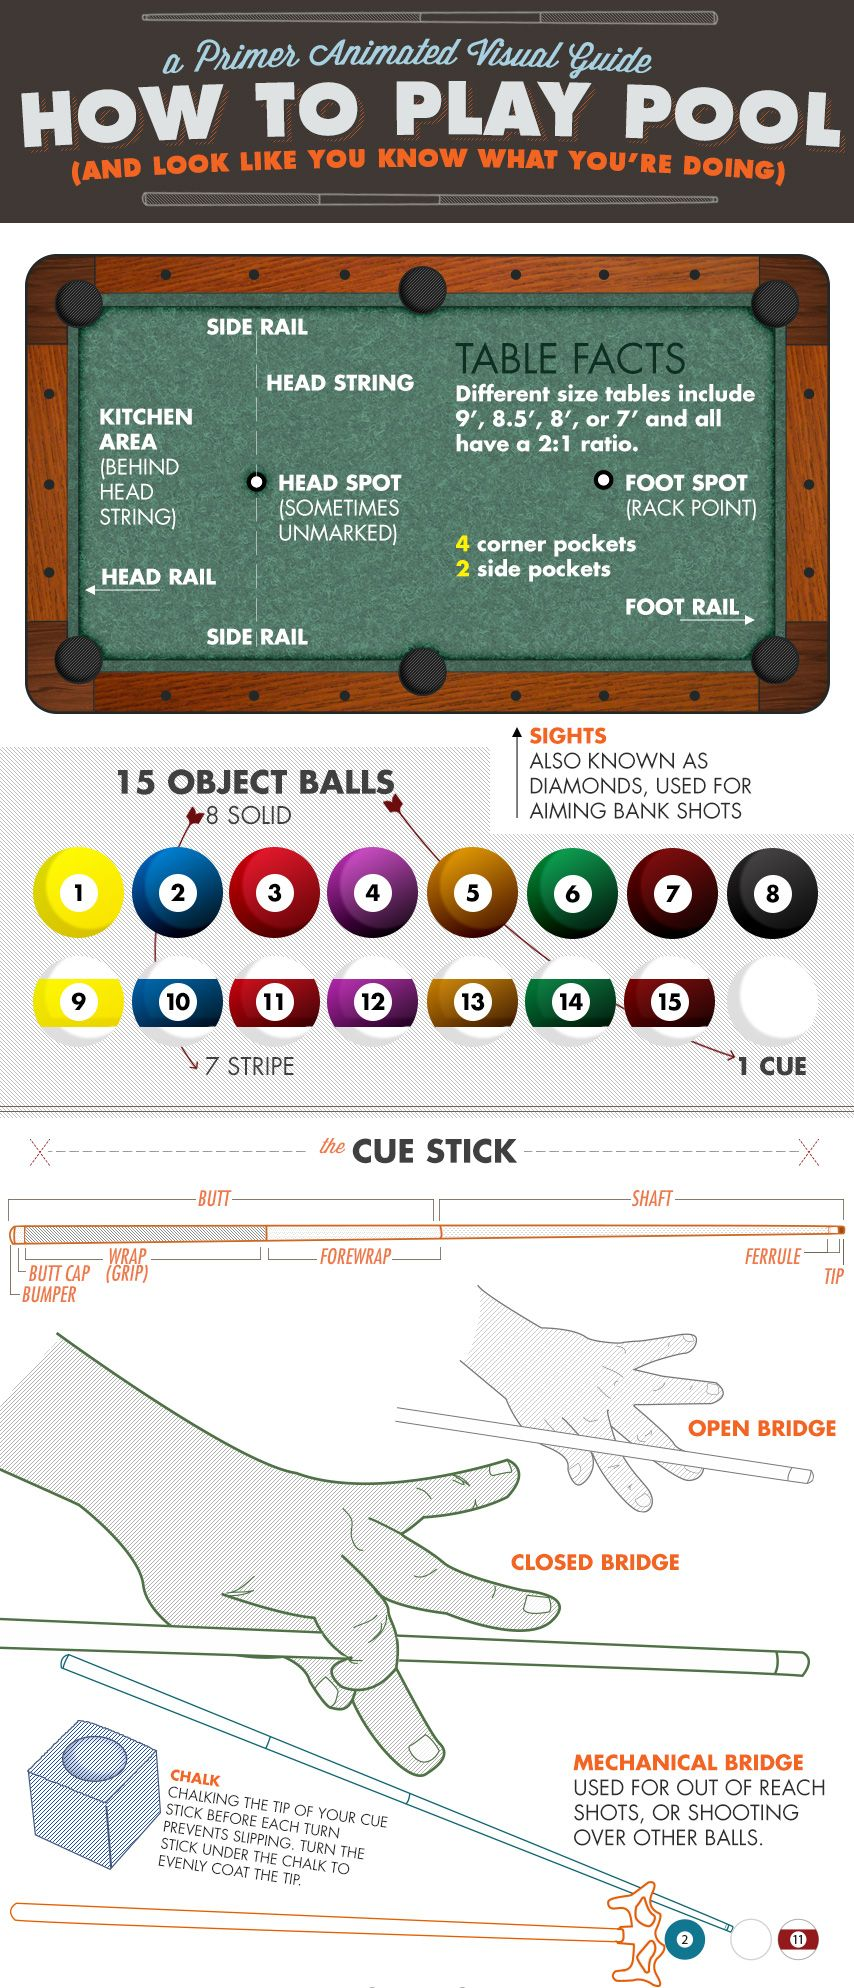 How To Play Pool And Look Like You Know What You Re Doing An Animated Visual Guide Primer Play Pool Pool Table Games Pool Table